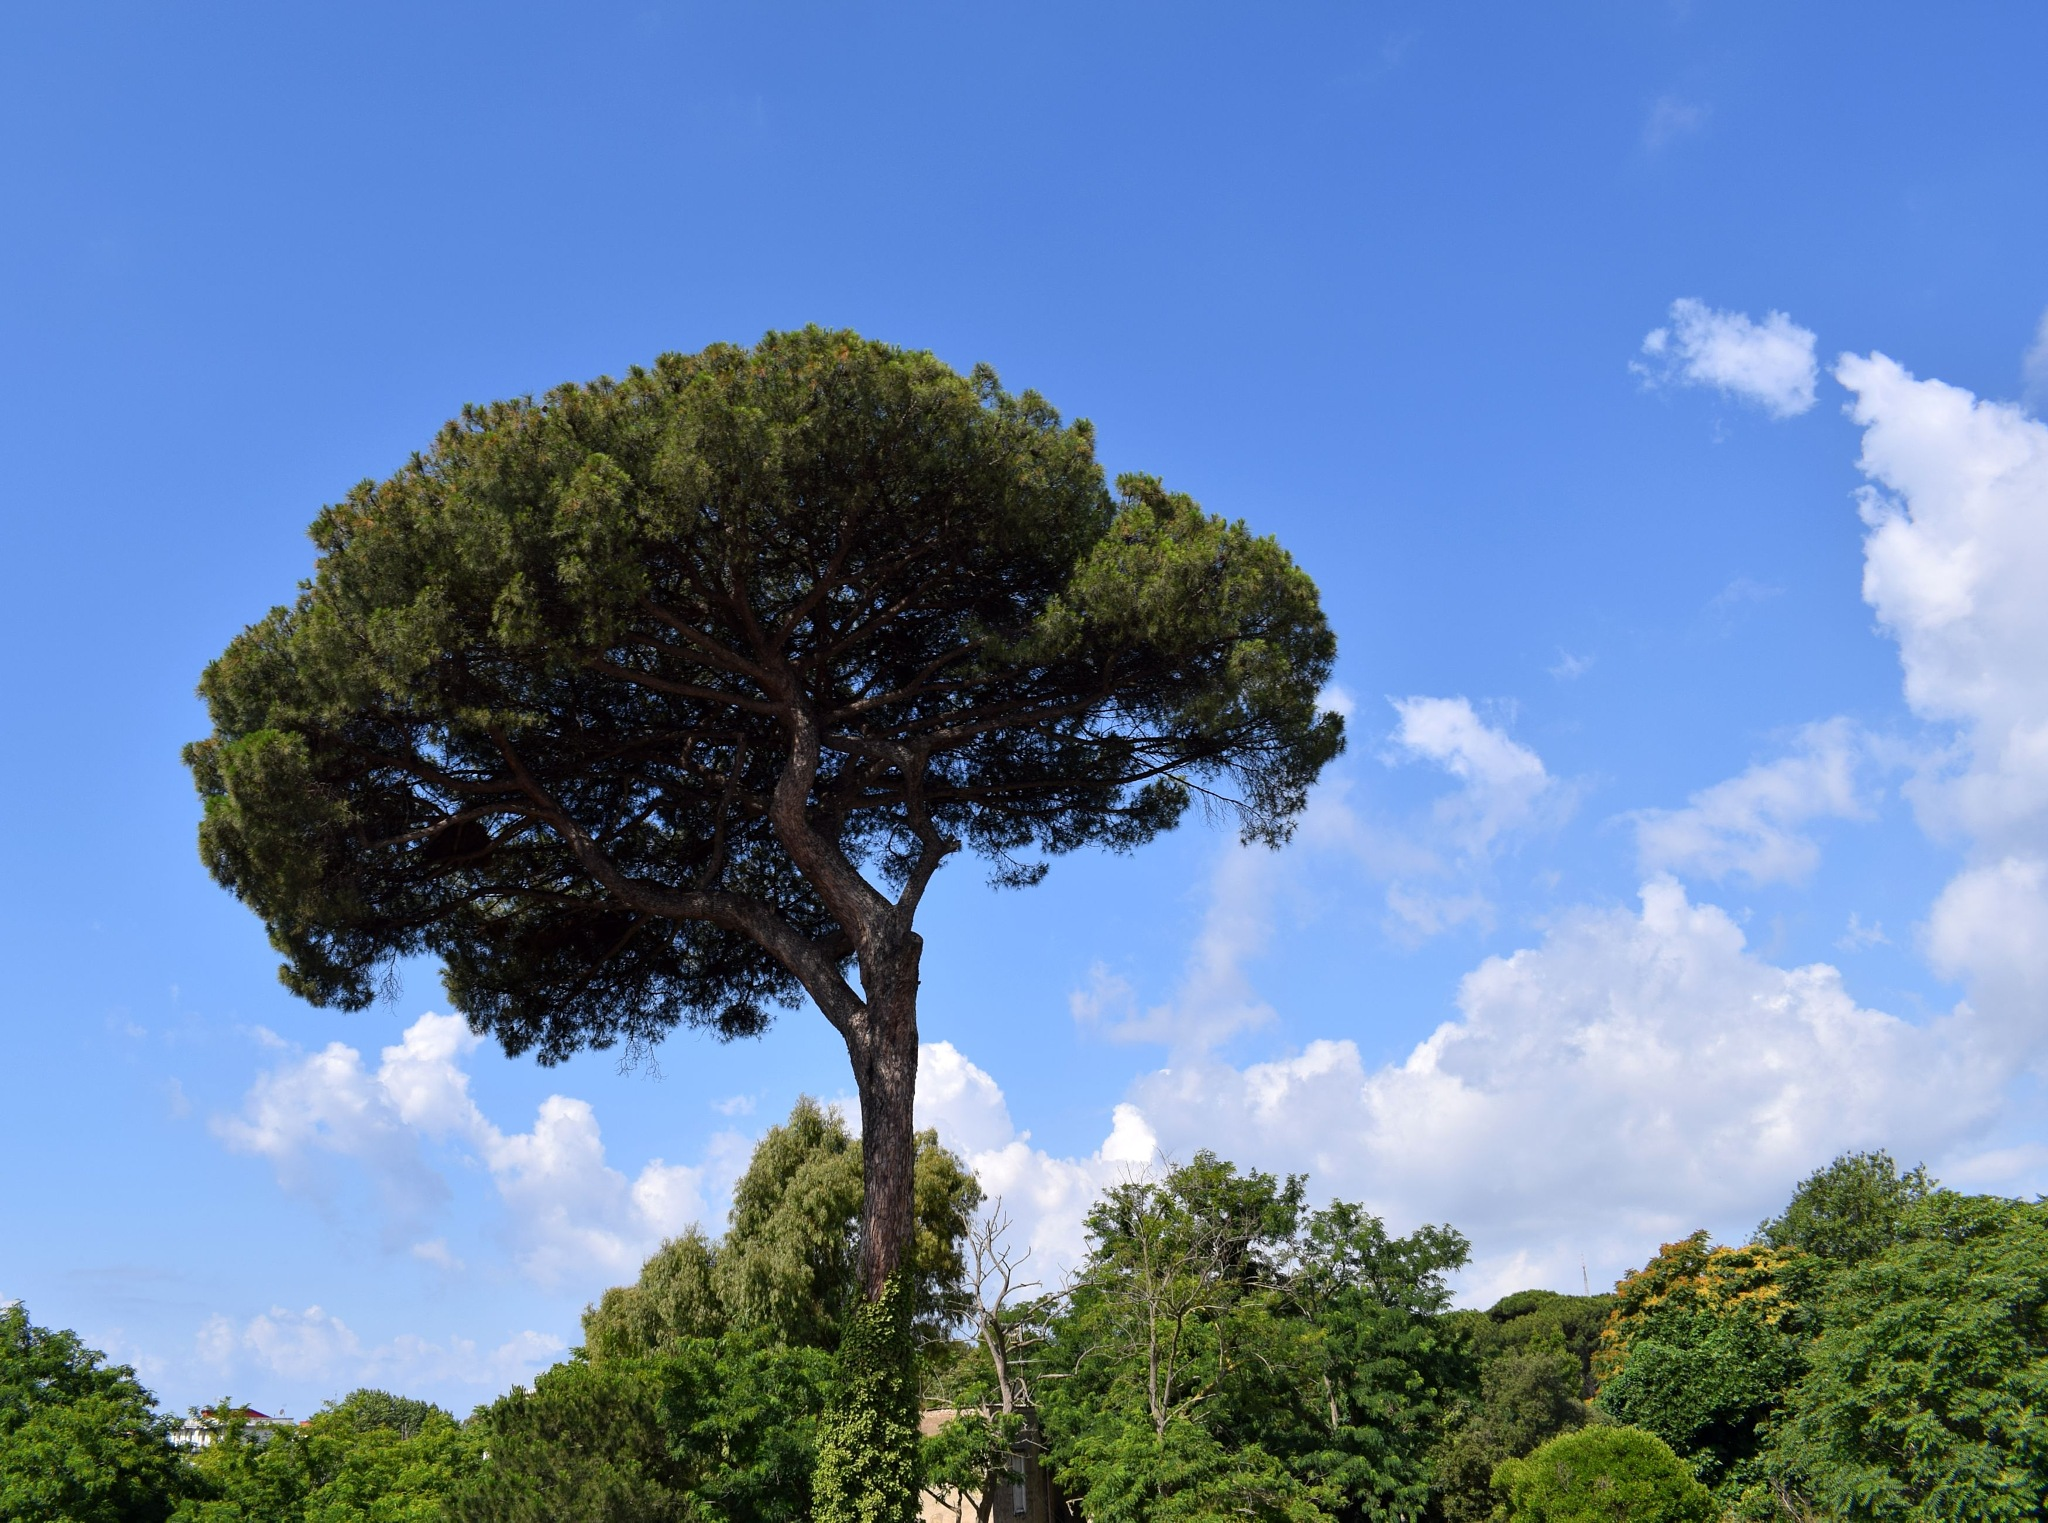 Naples - The Neapolitan Tree and... the Little Houses by Mister Arnauna & Gatto Giuggiolone